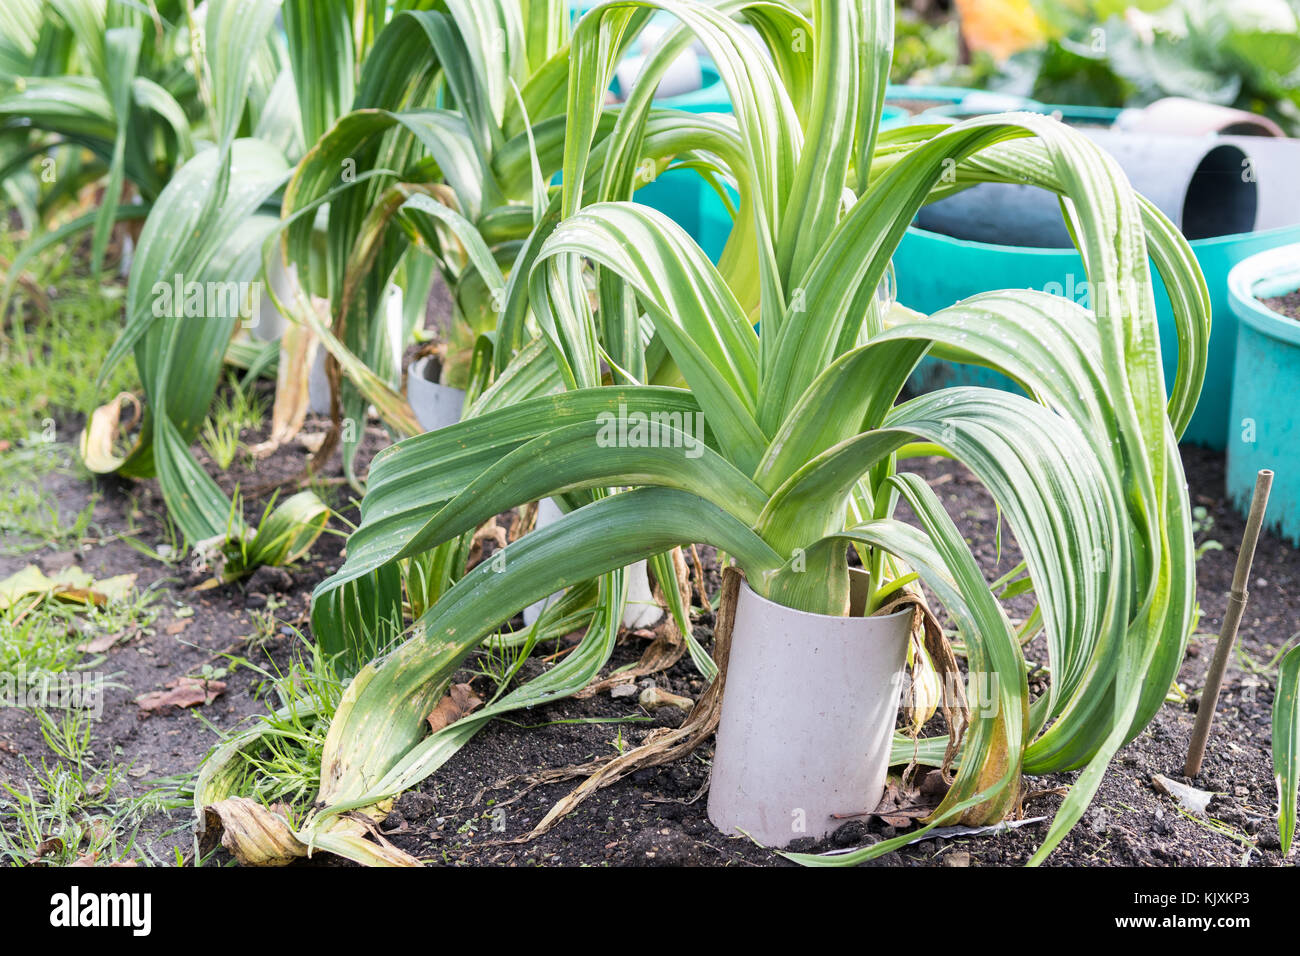 blanching leeks by growing in pipes - Stock Image